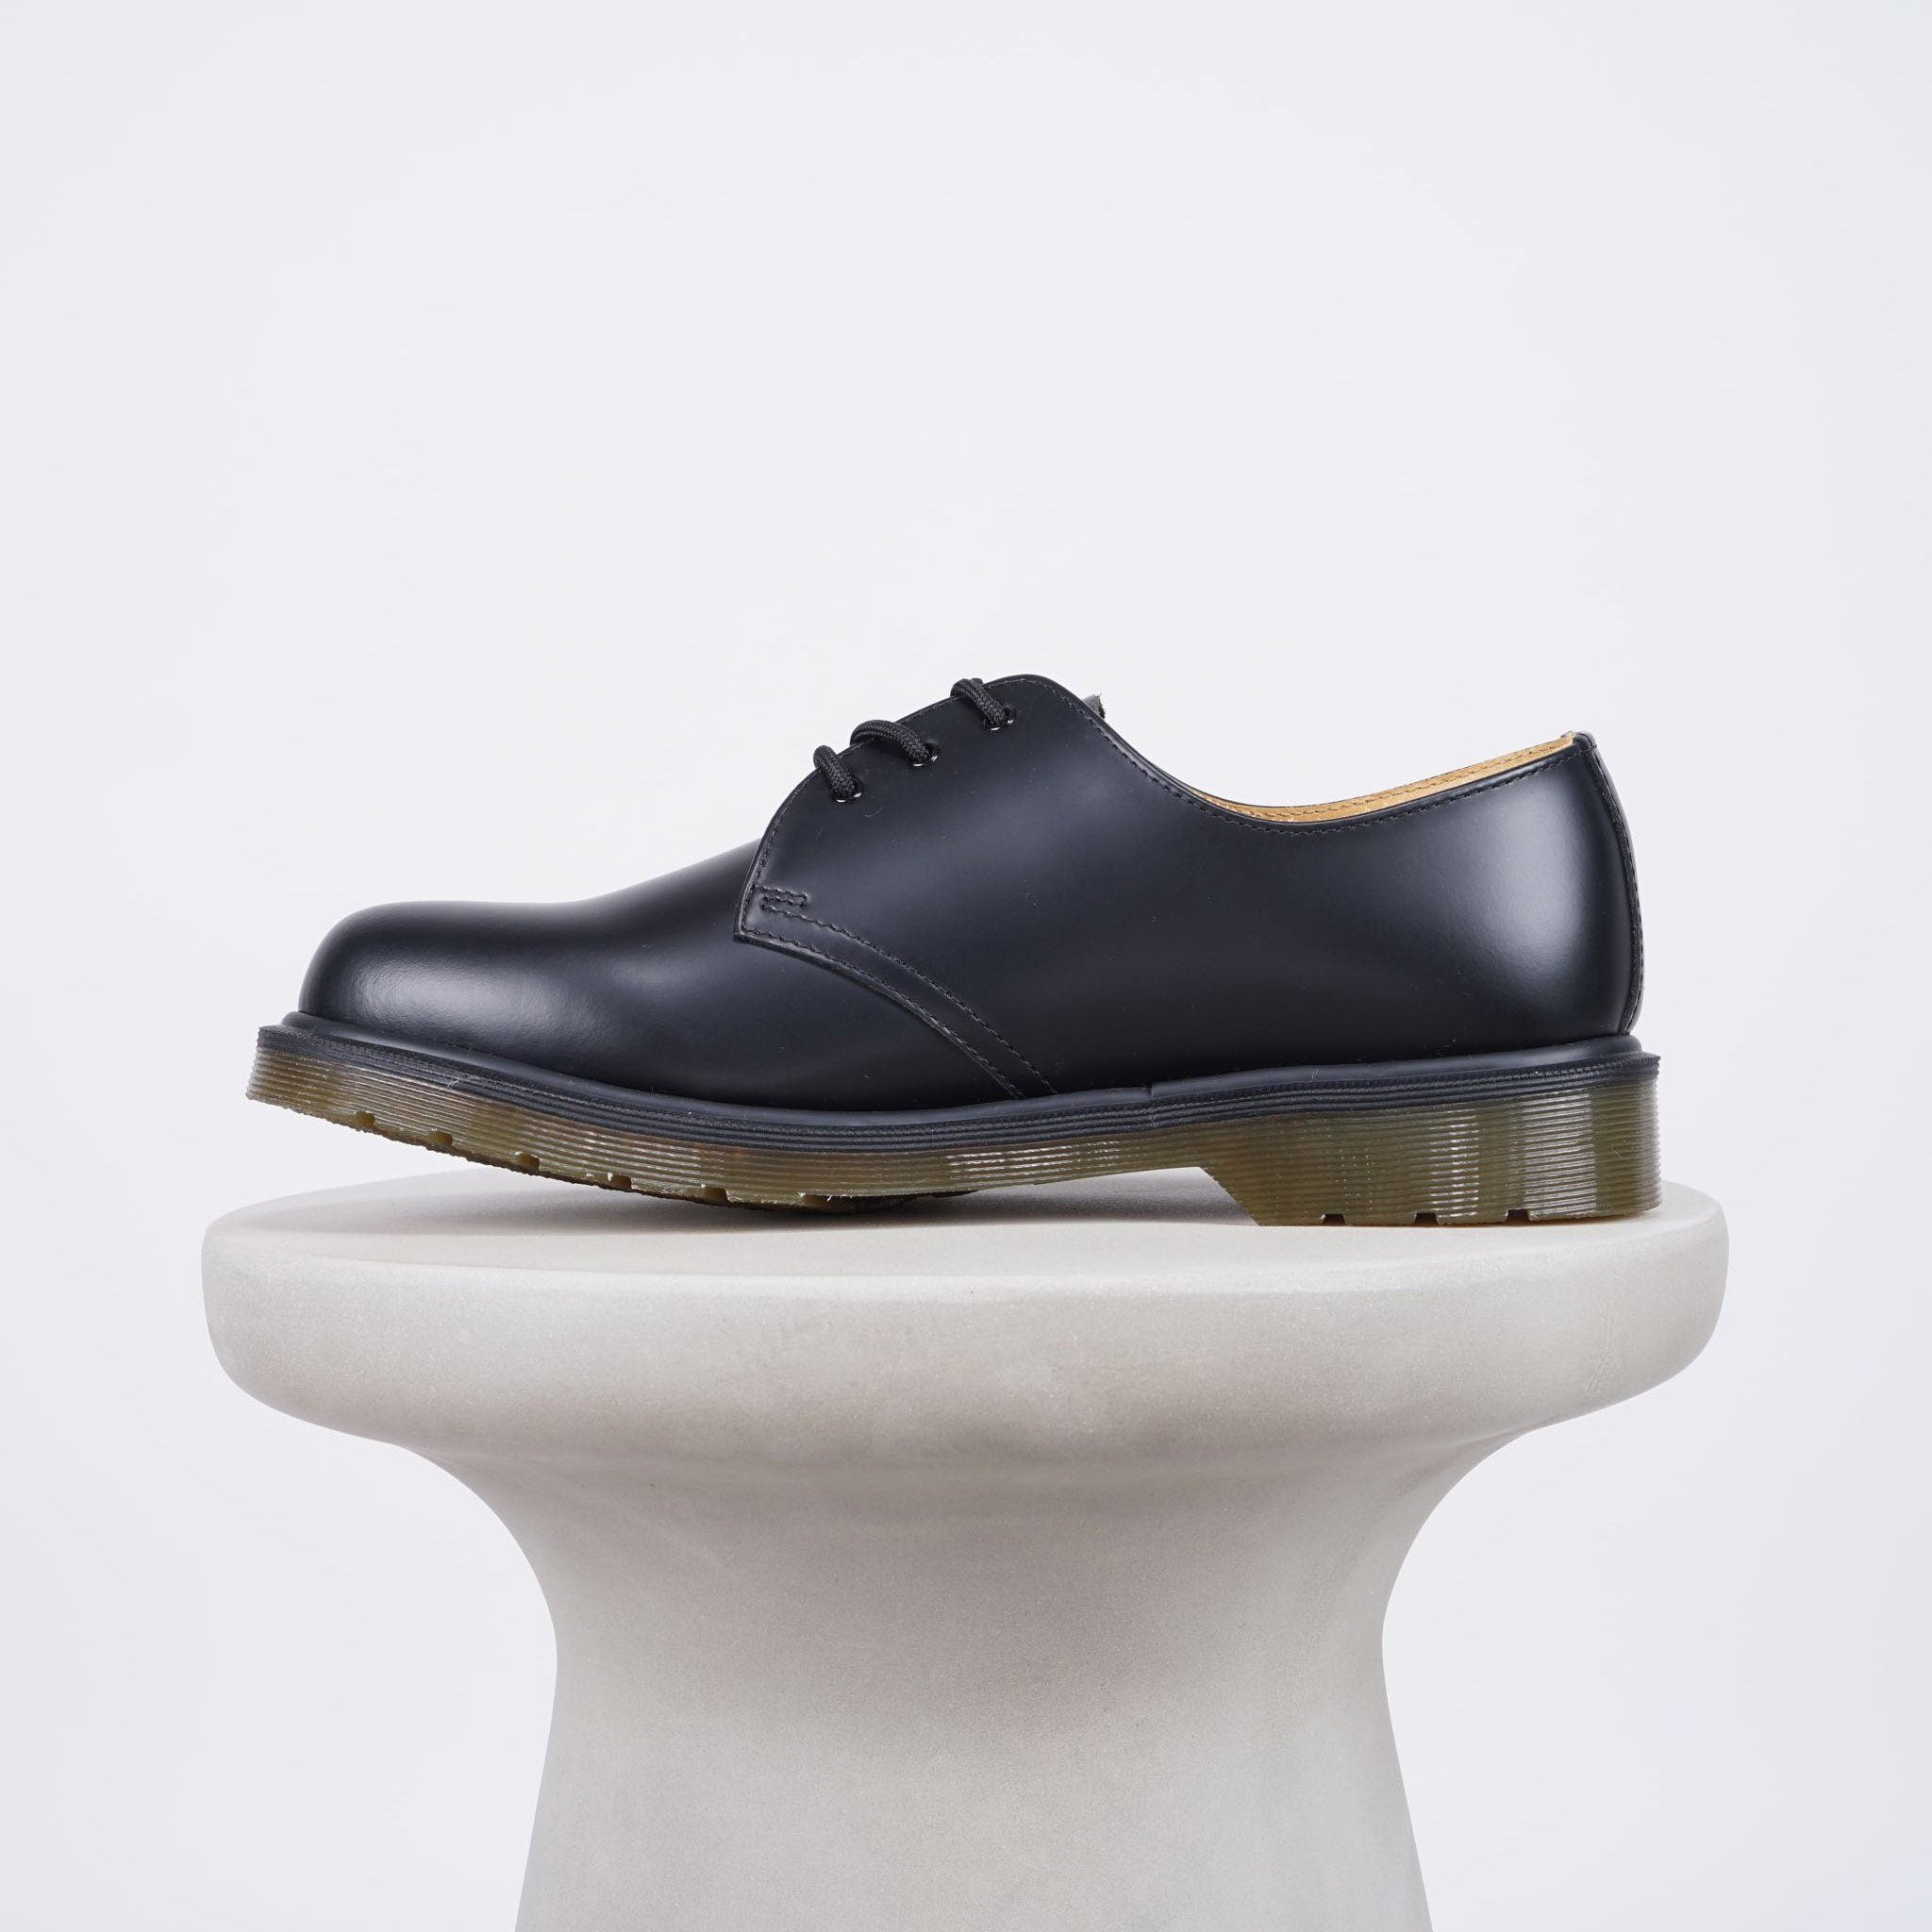 Dr. Martens 1461 PW shoes - Black